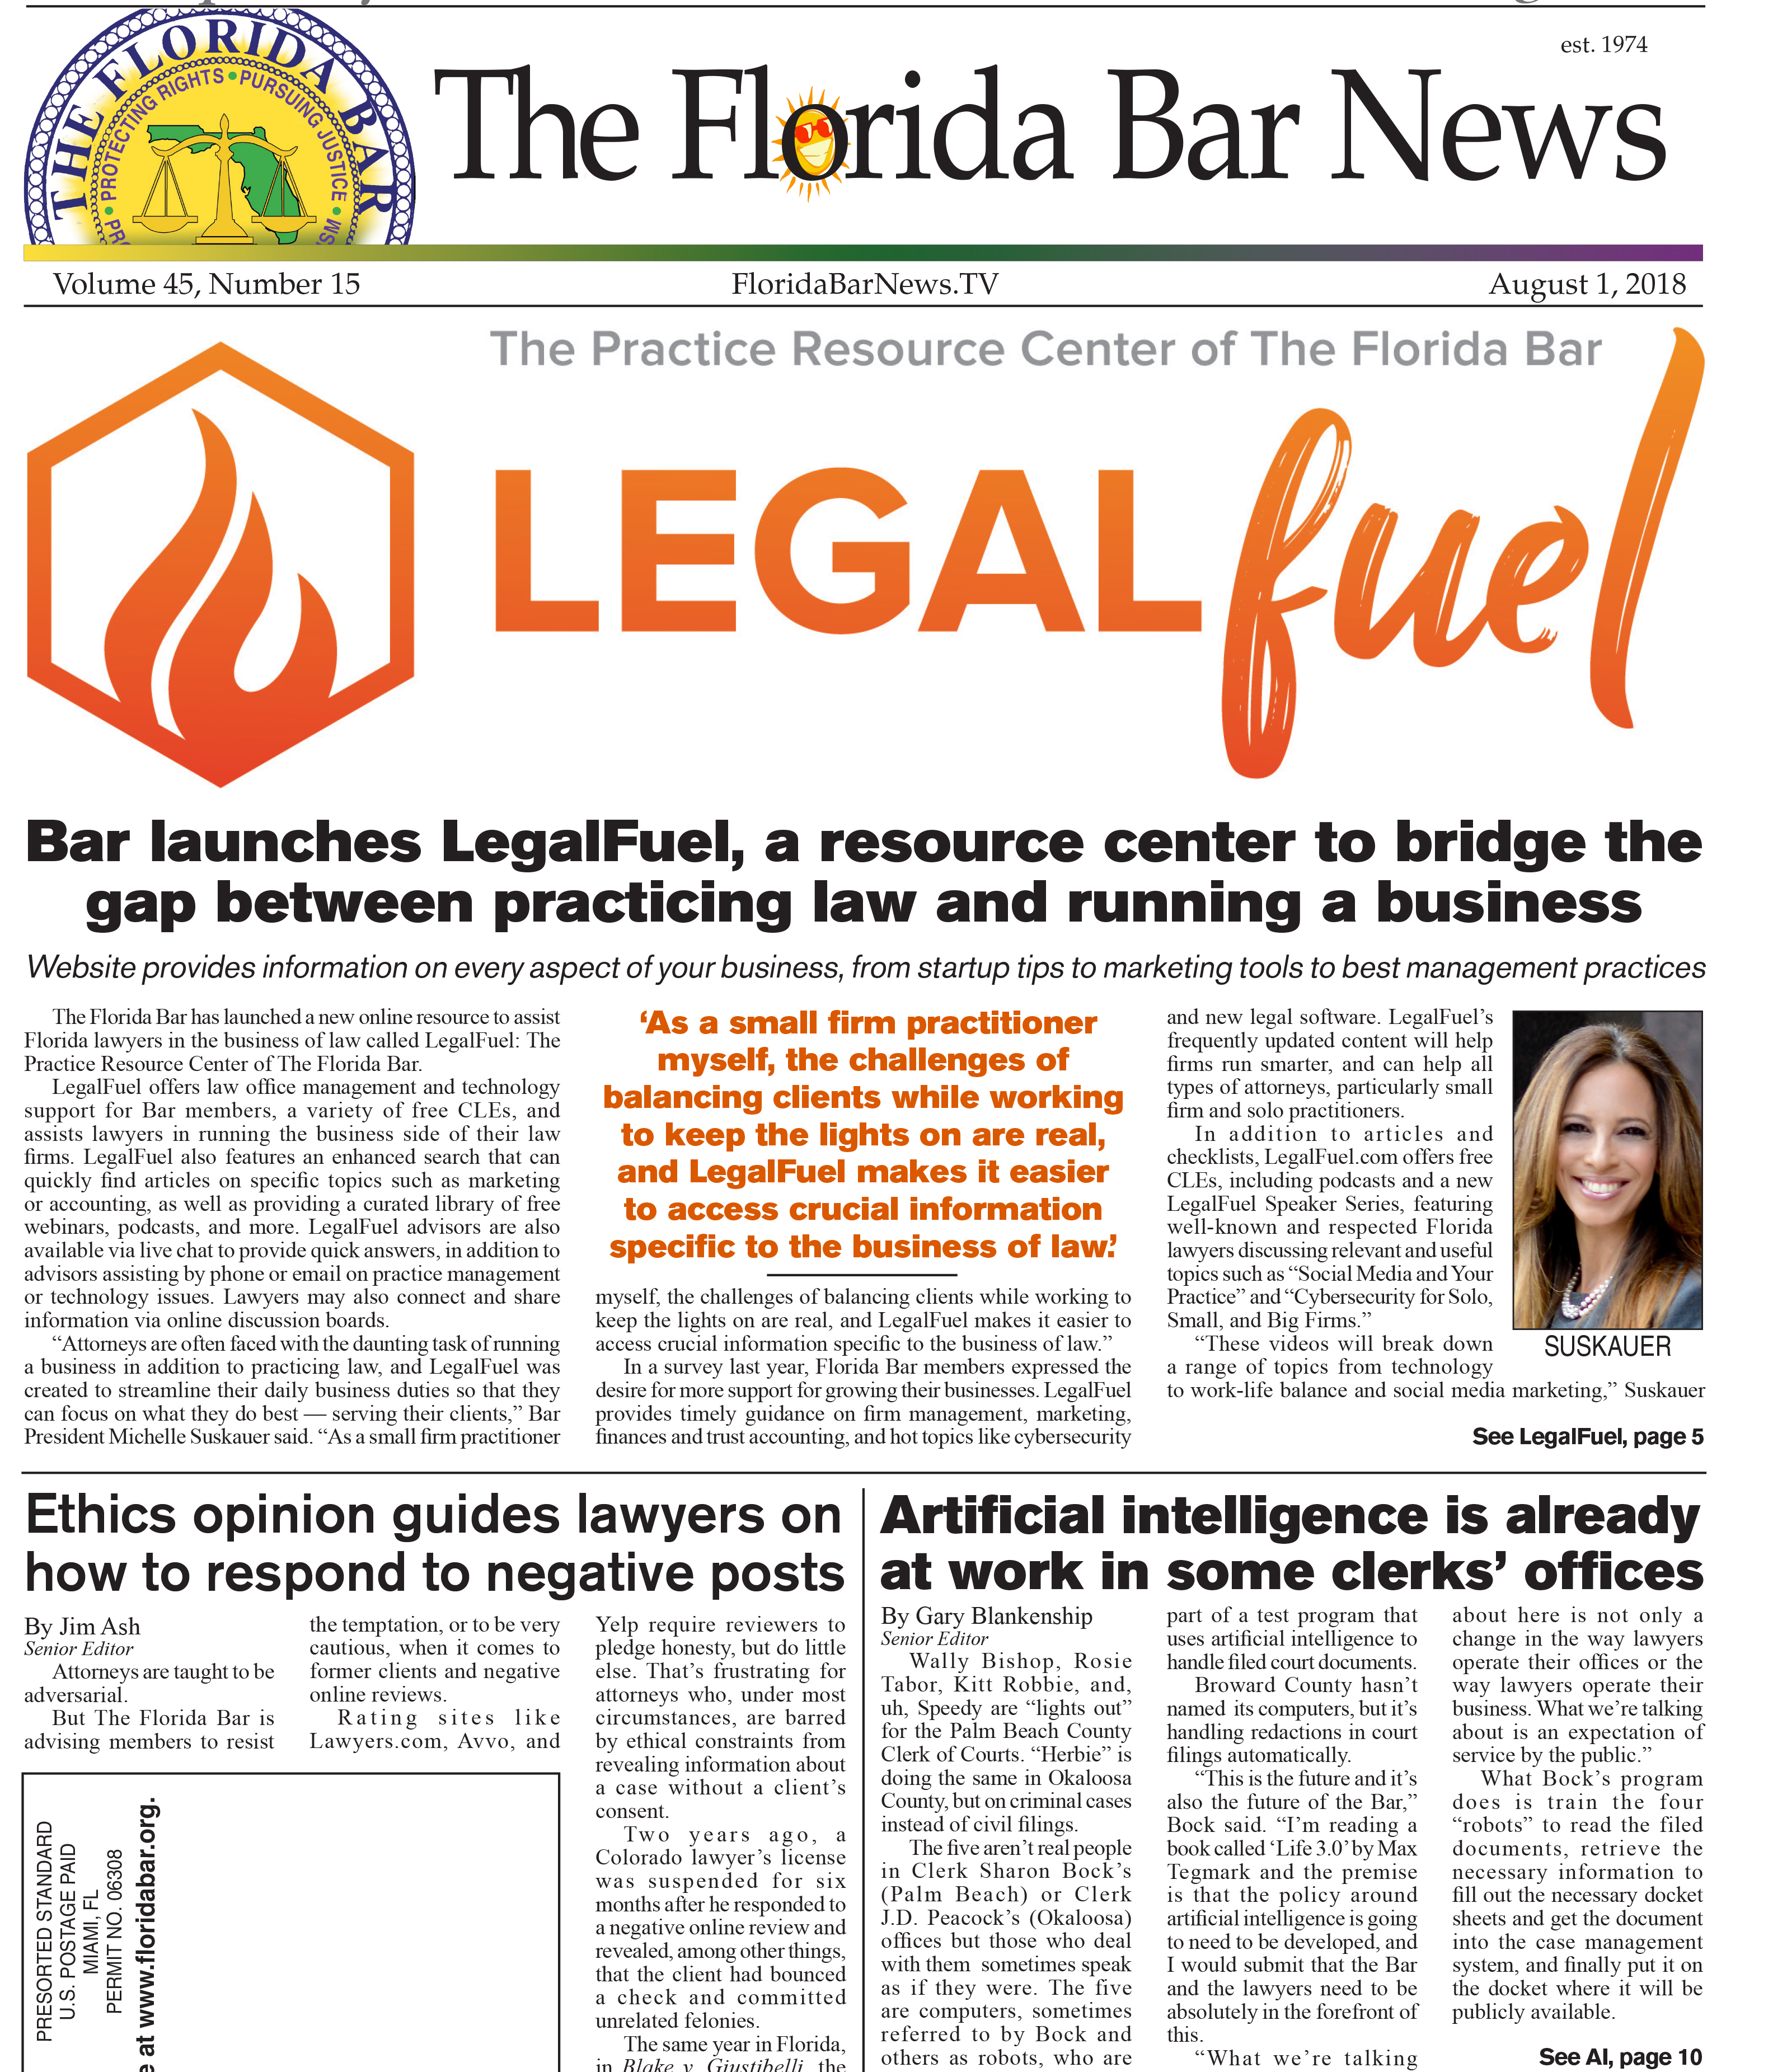 The August 1 Bar News: LegalFuel launched, Bar advises attorneys on dealing with reviews and A.I. reaches clerk's offices